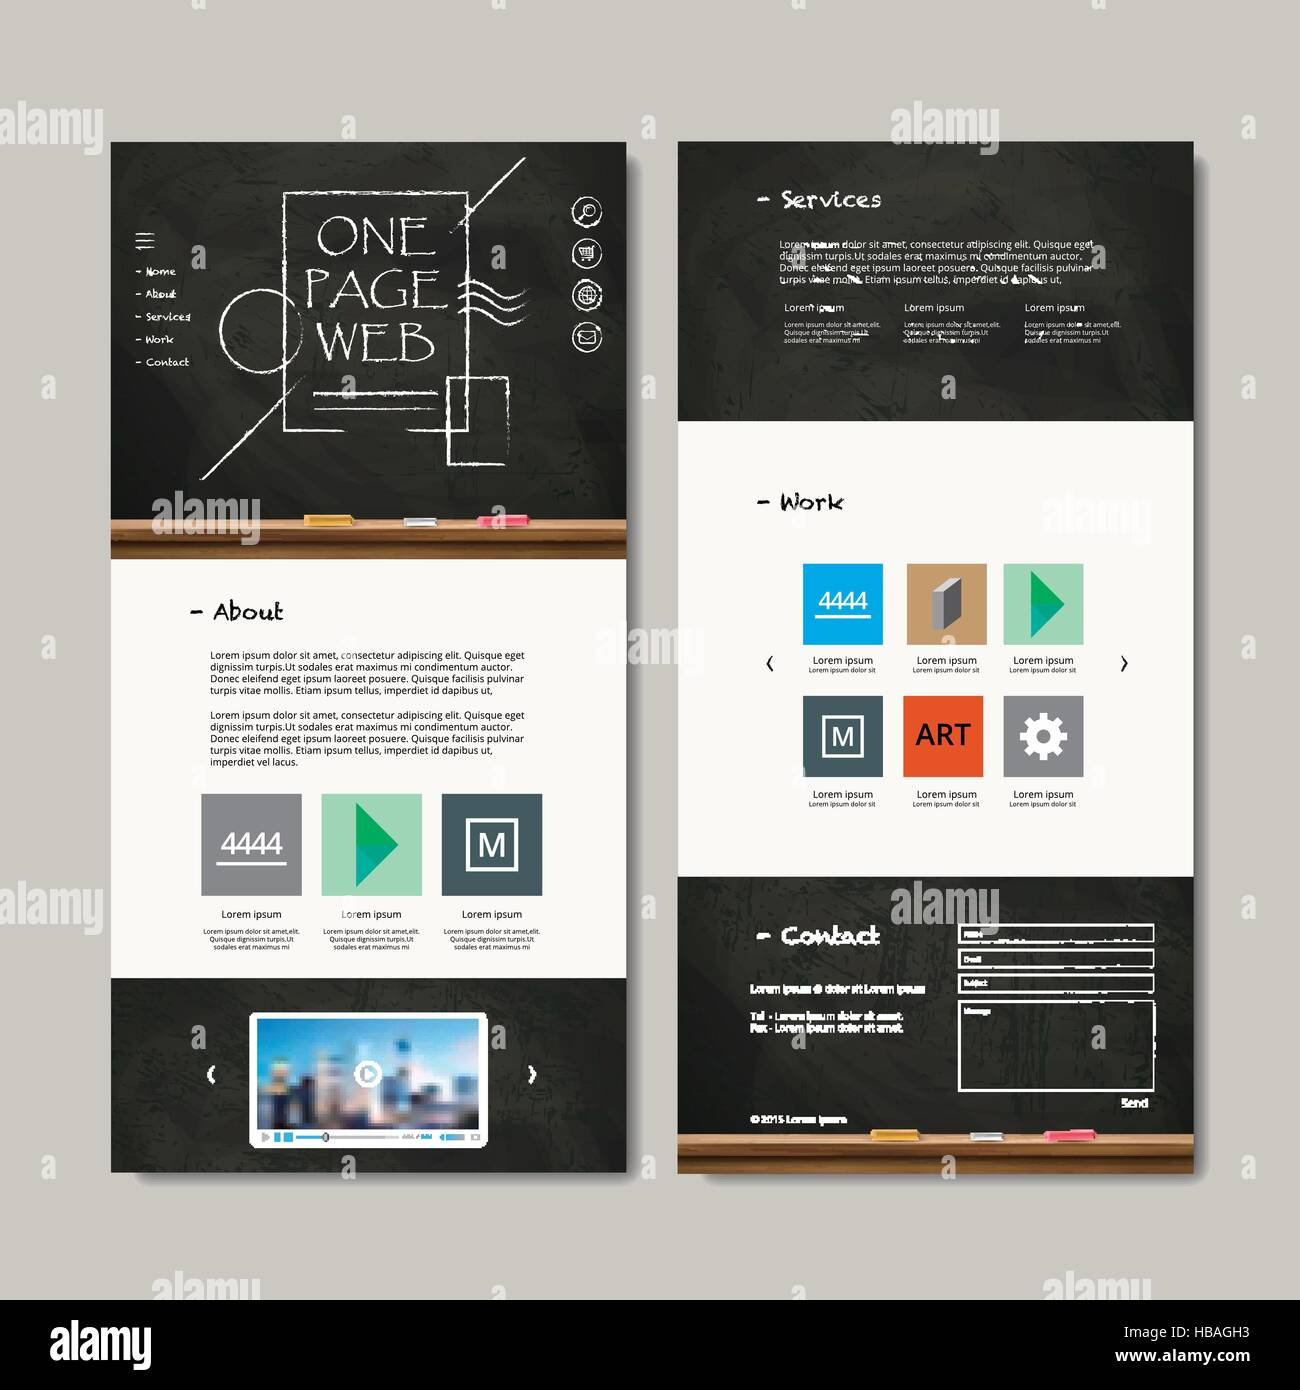 one page web design with chalkboard elements stock vector art